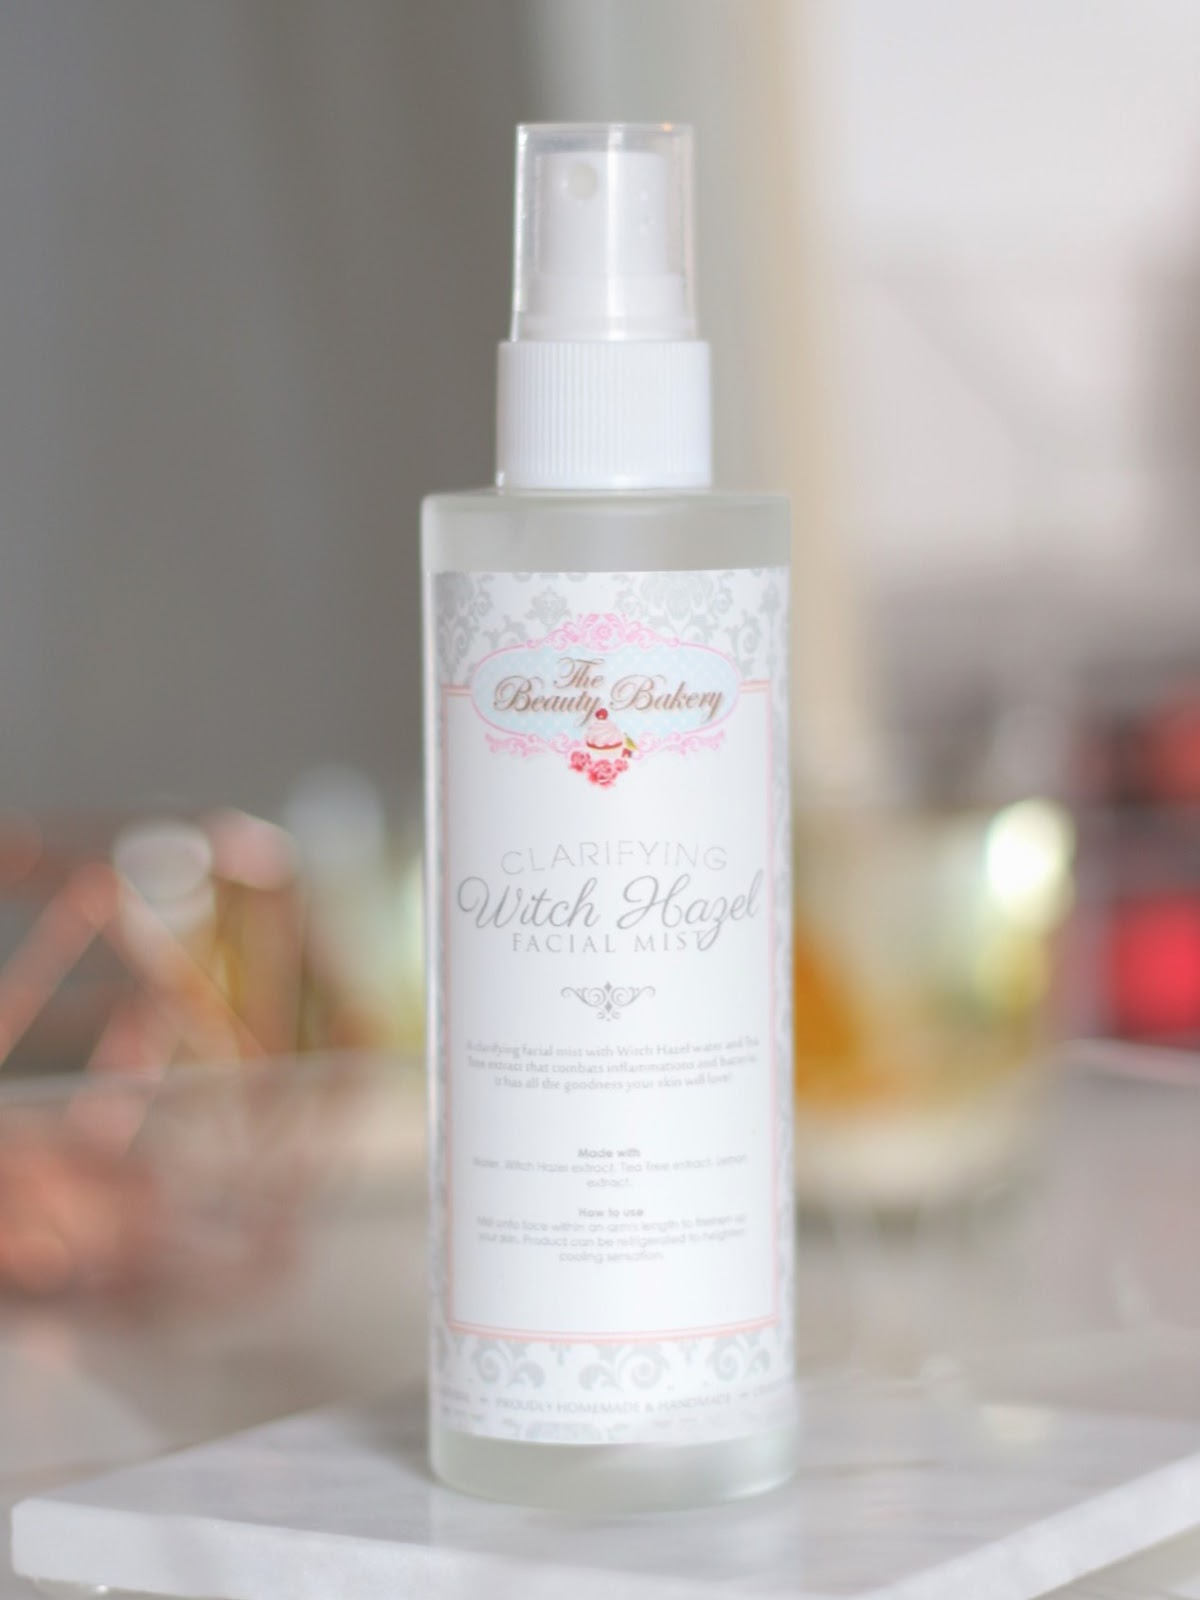 Beauty Bakery Facial Mist Review, Beauty Bakery Witch Hazel Facial Mist Review